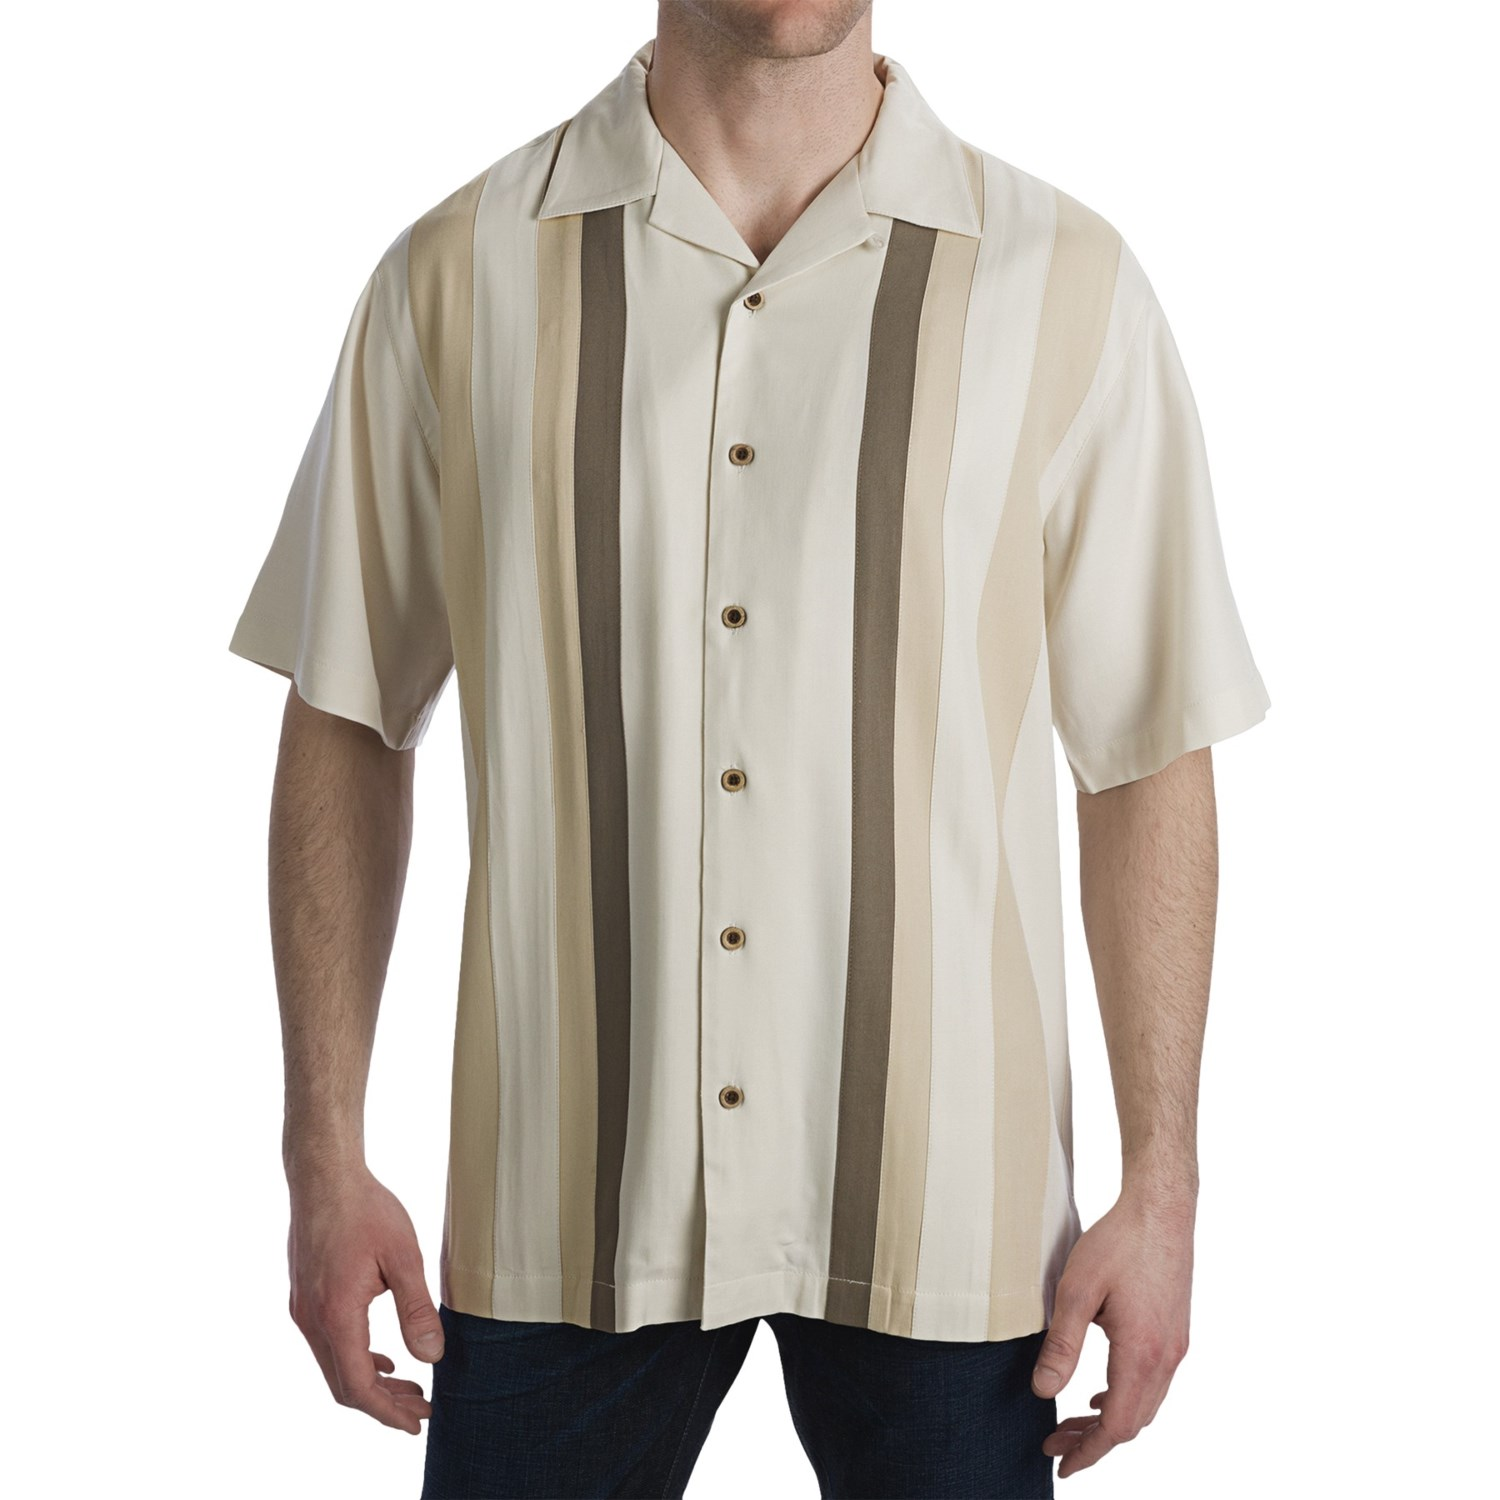 Tommy Bahama % Silk Men's short Sleeve Shirt Size-m the Shirt is in good condition no damages or stains. Measurements: Shoulders- 21